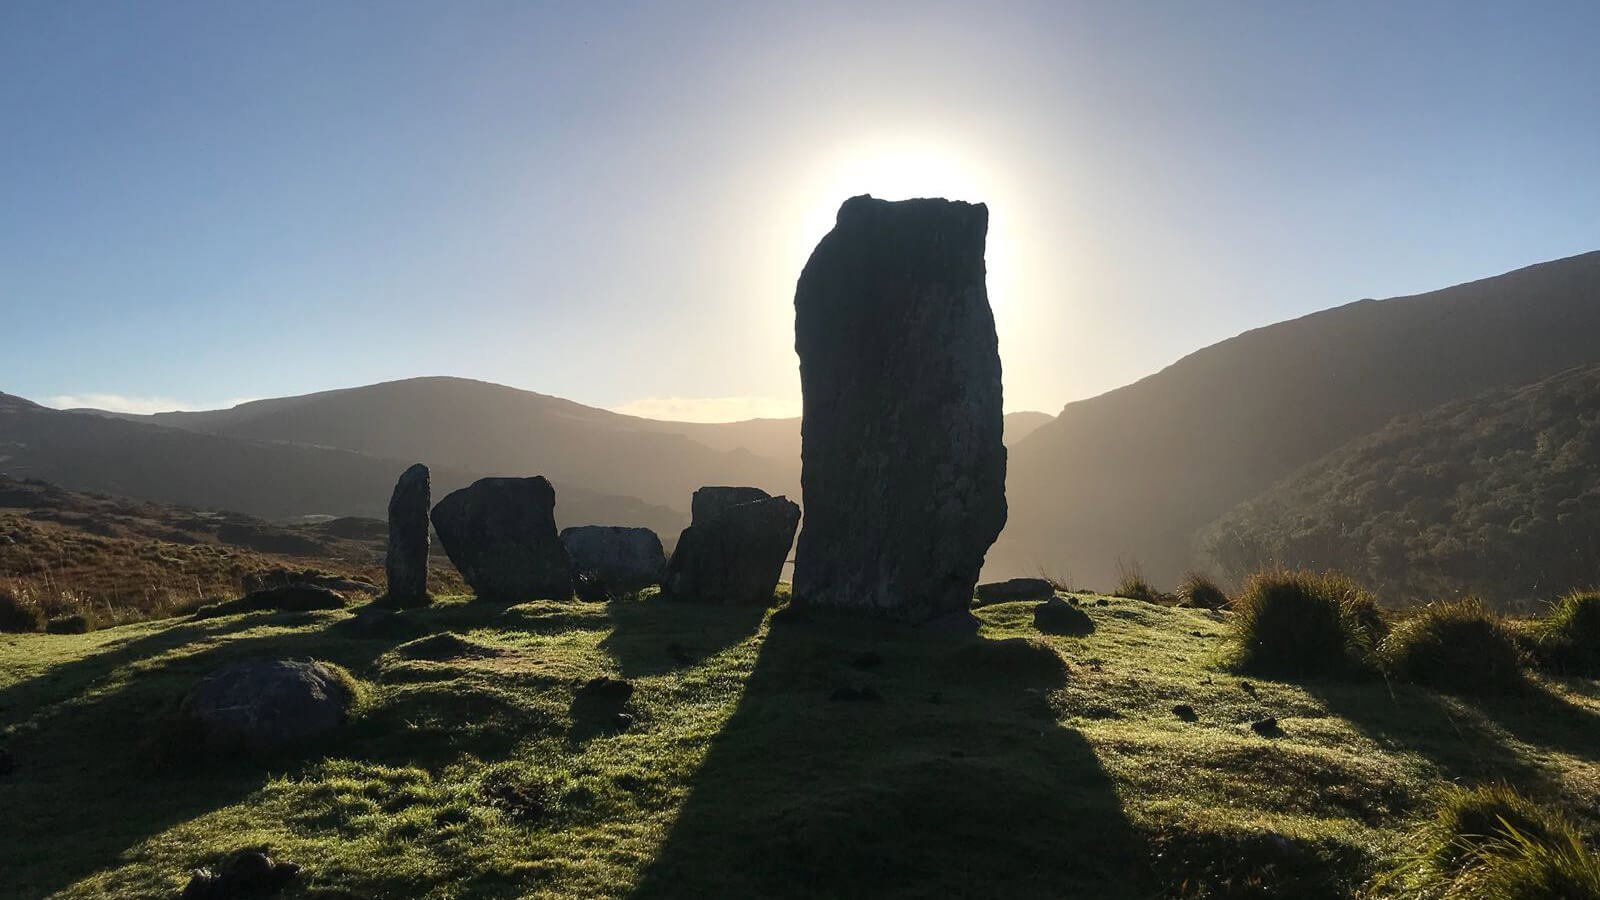 Uragh Stone circle silhouetted against the sun